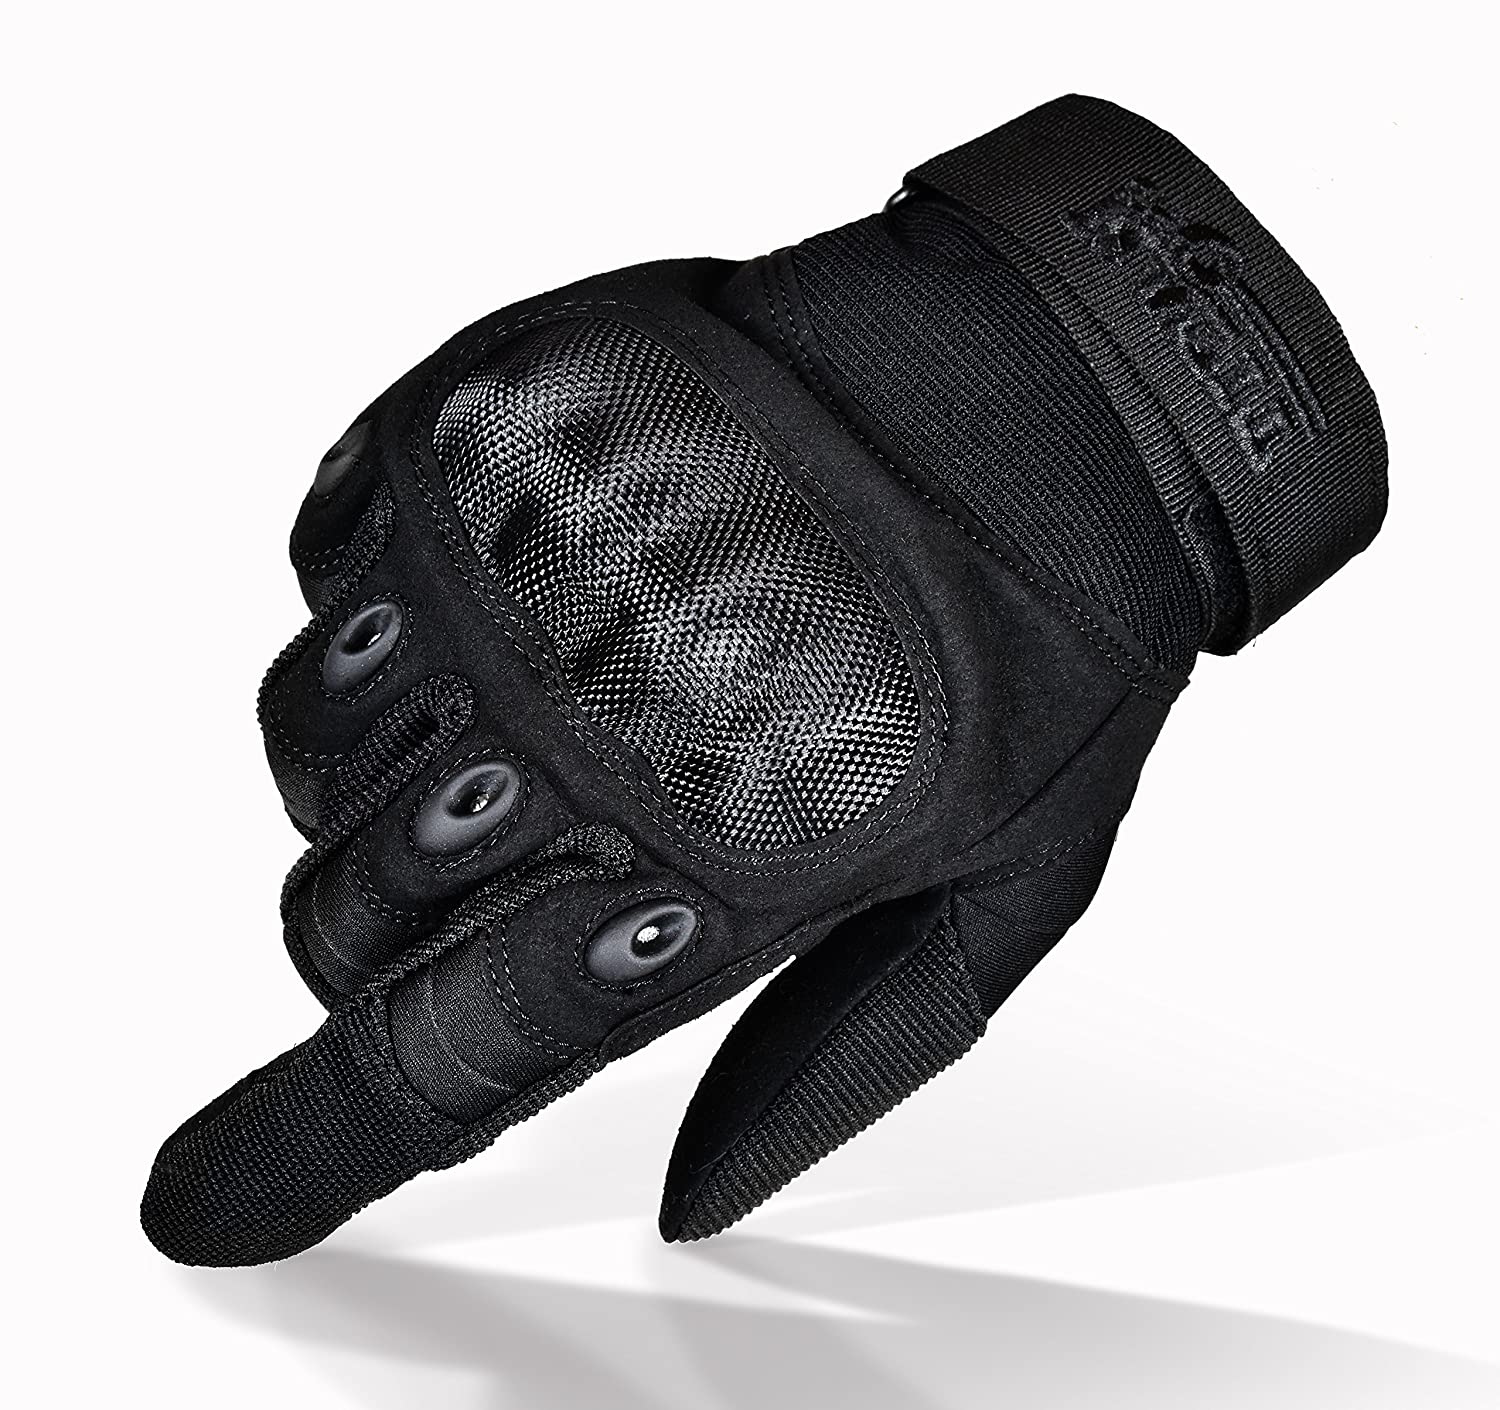 TitanOPS hard knuckle combat glove